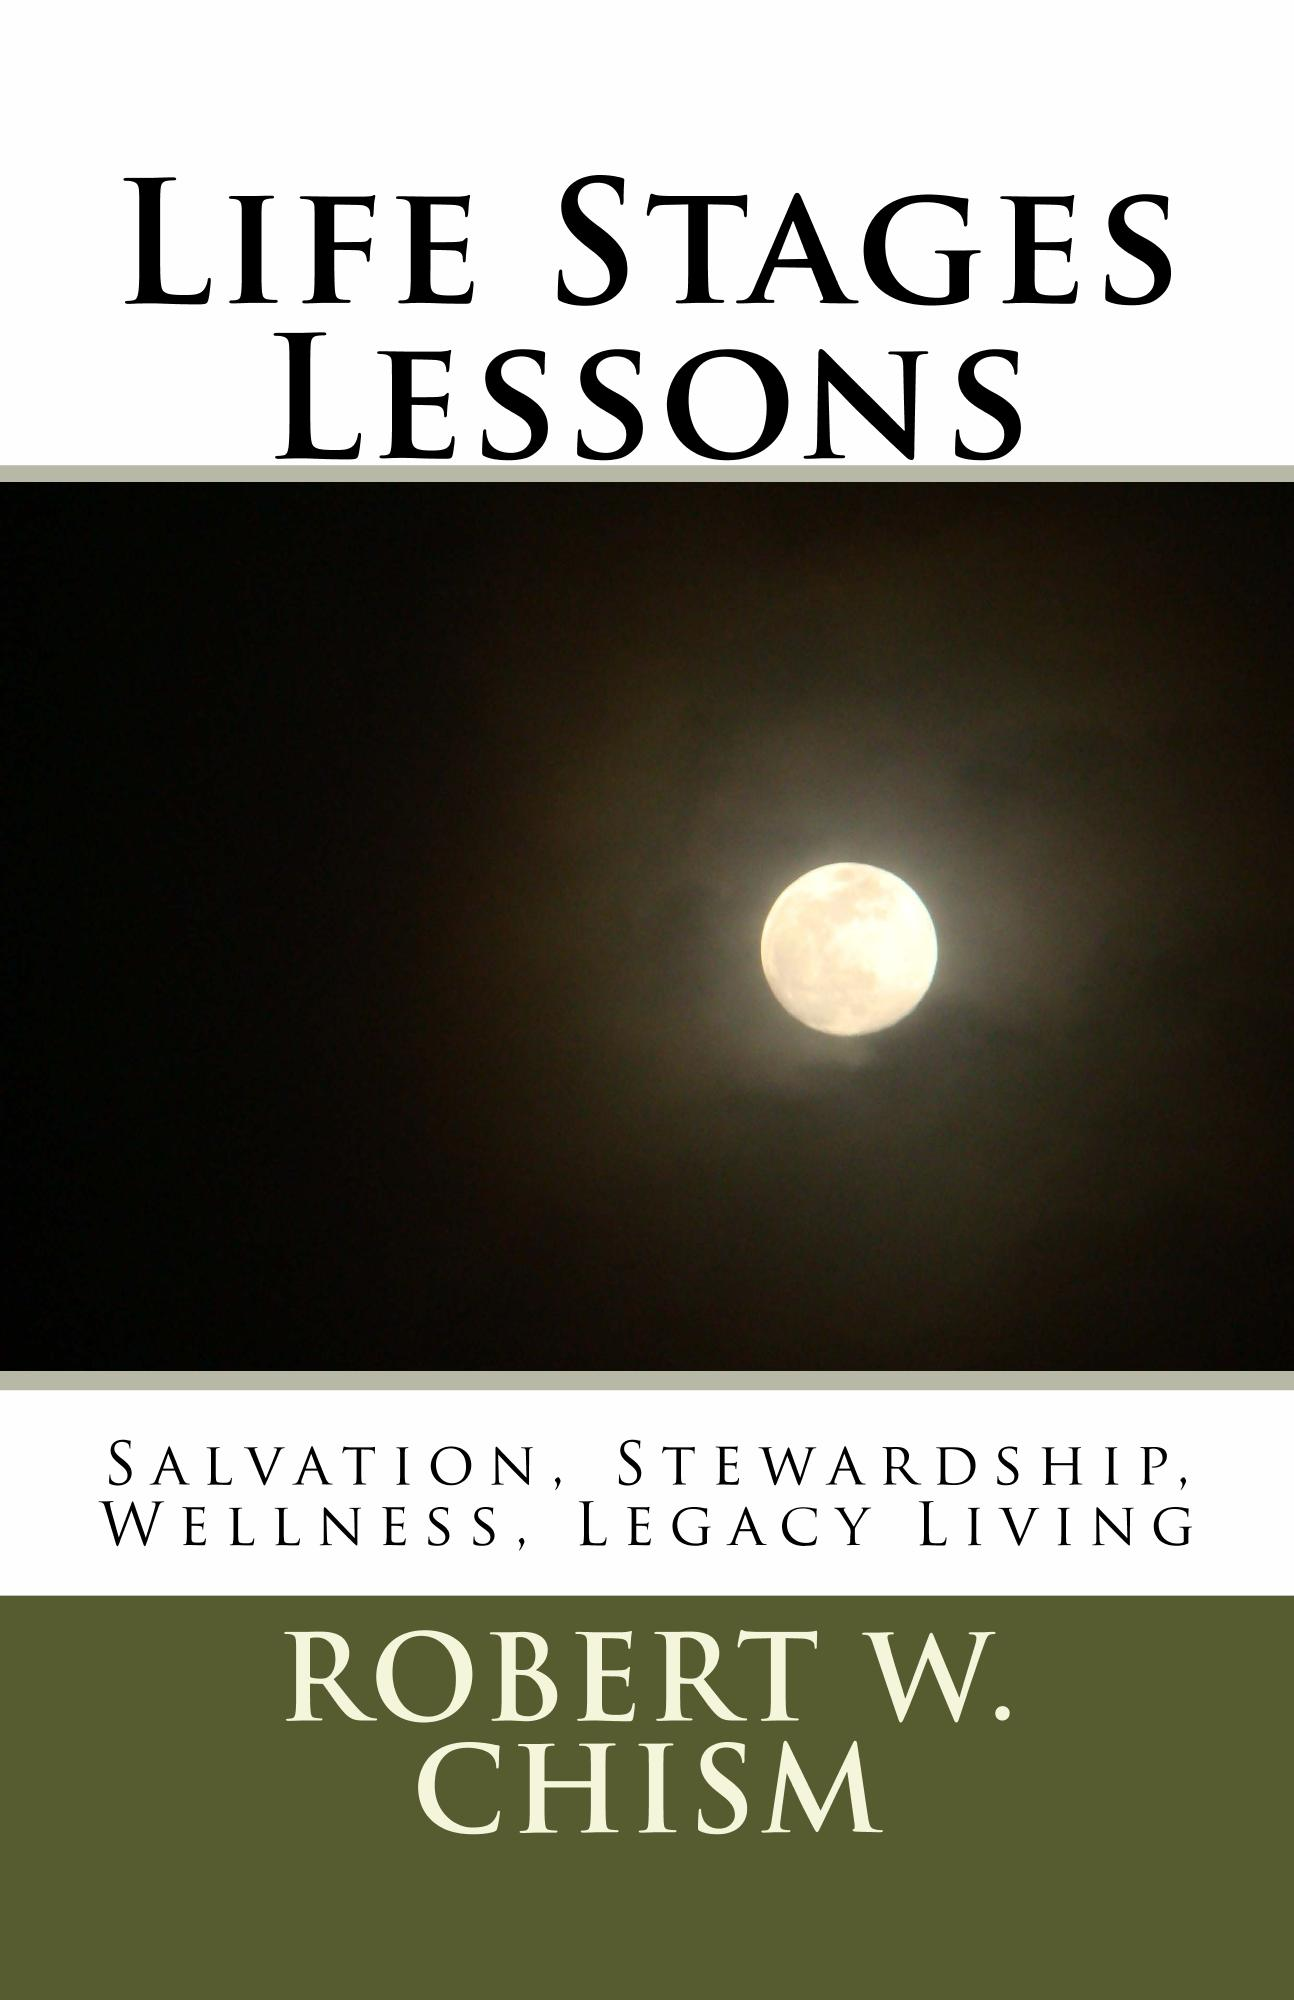 life_stages_lessons_cover_for_kindle